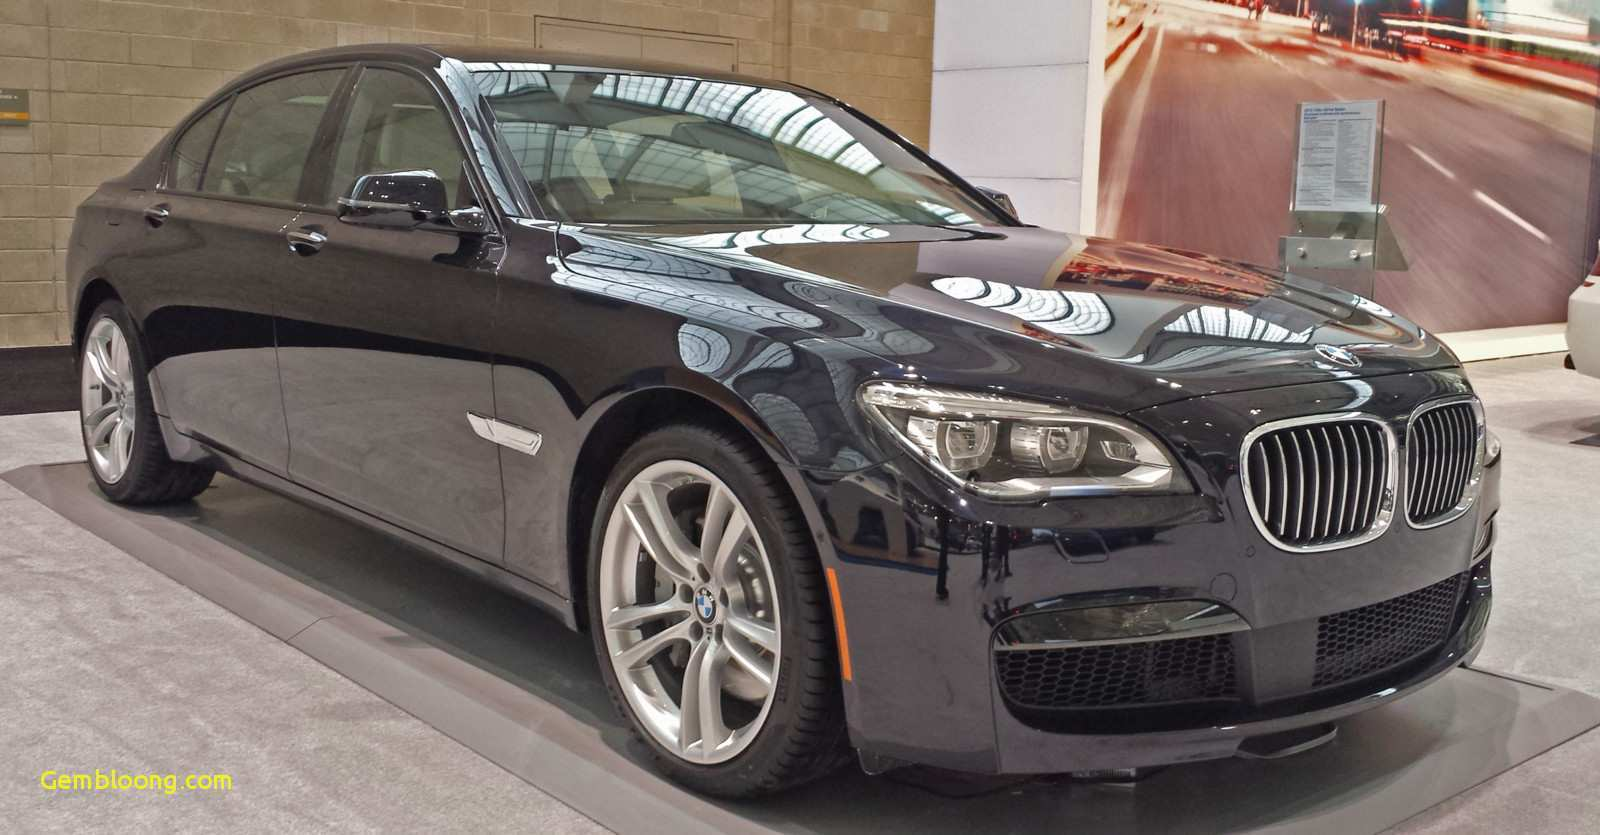 70 All New 2019 BMW 7 Series Perfection New Price